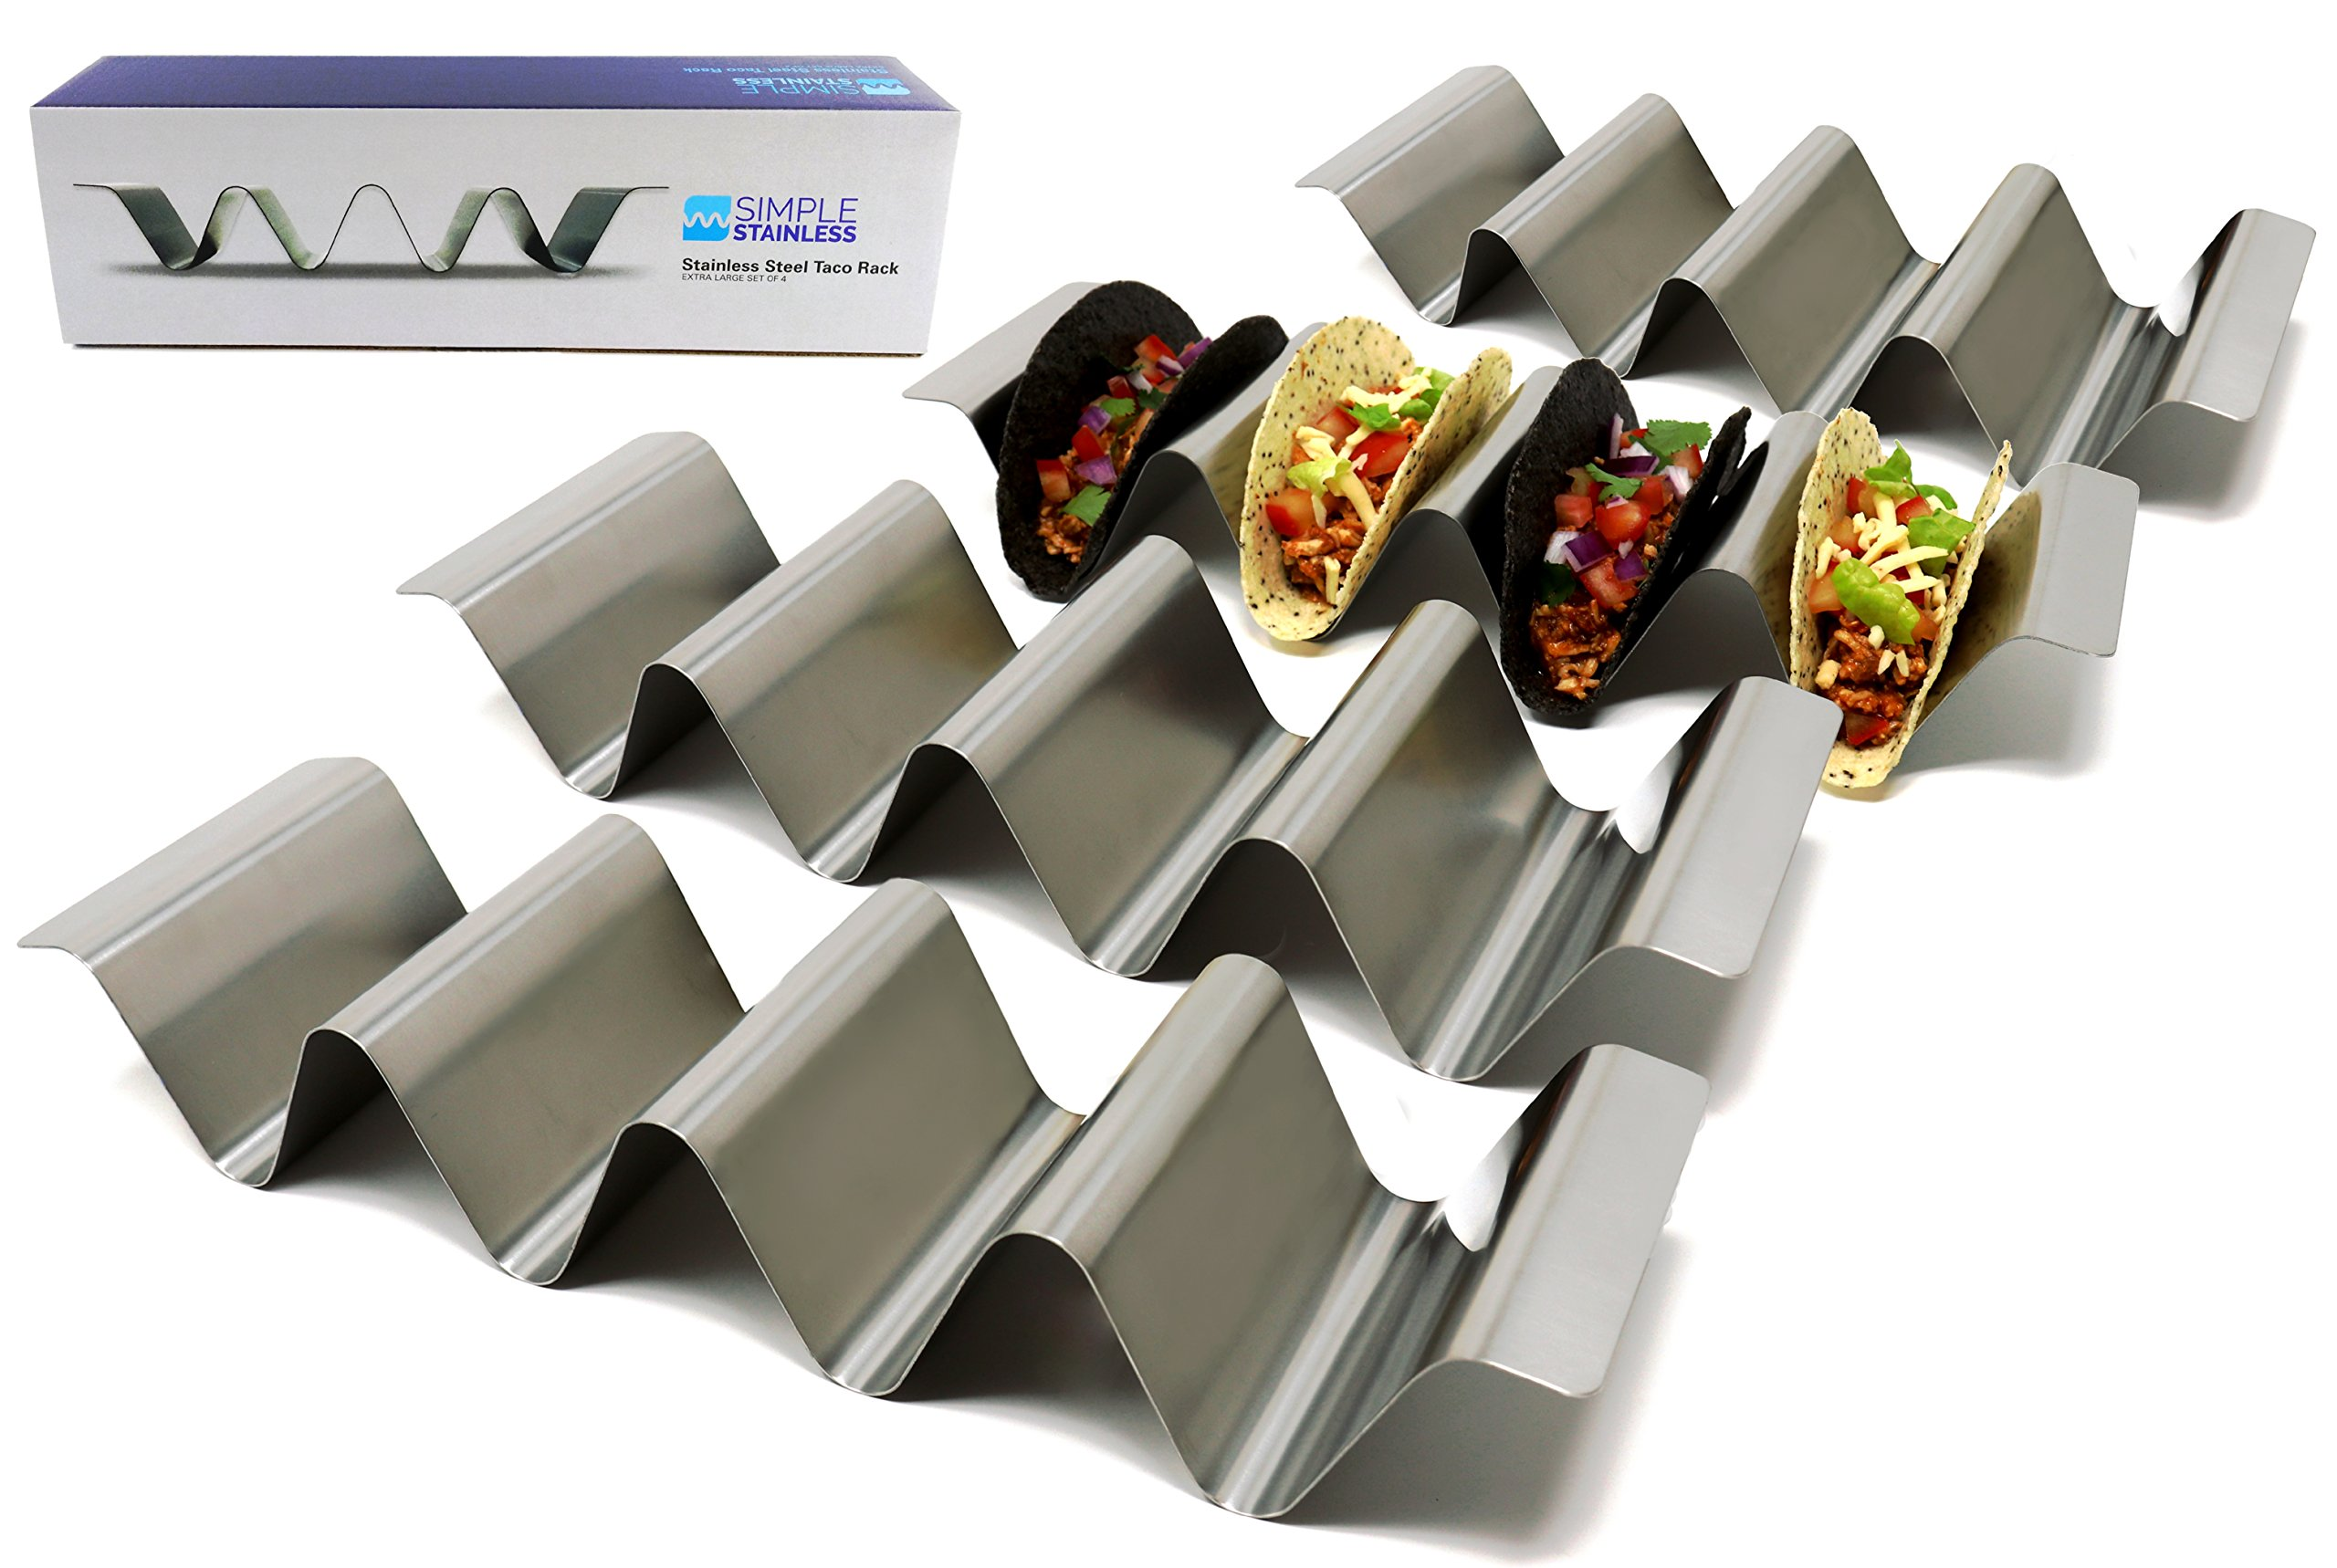 Premium Taco Holder Stands - Set of 4 - Crafted from Food Grade Stainless Steel - Each Rack Holds 4 Tacos/Tortillas - with Handles and Round Groove Design - For Restaurant/Home - By SimpleStainless by SimpleStainless